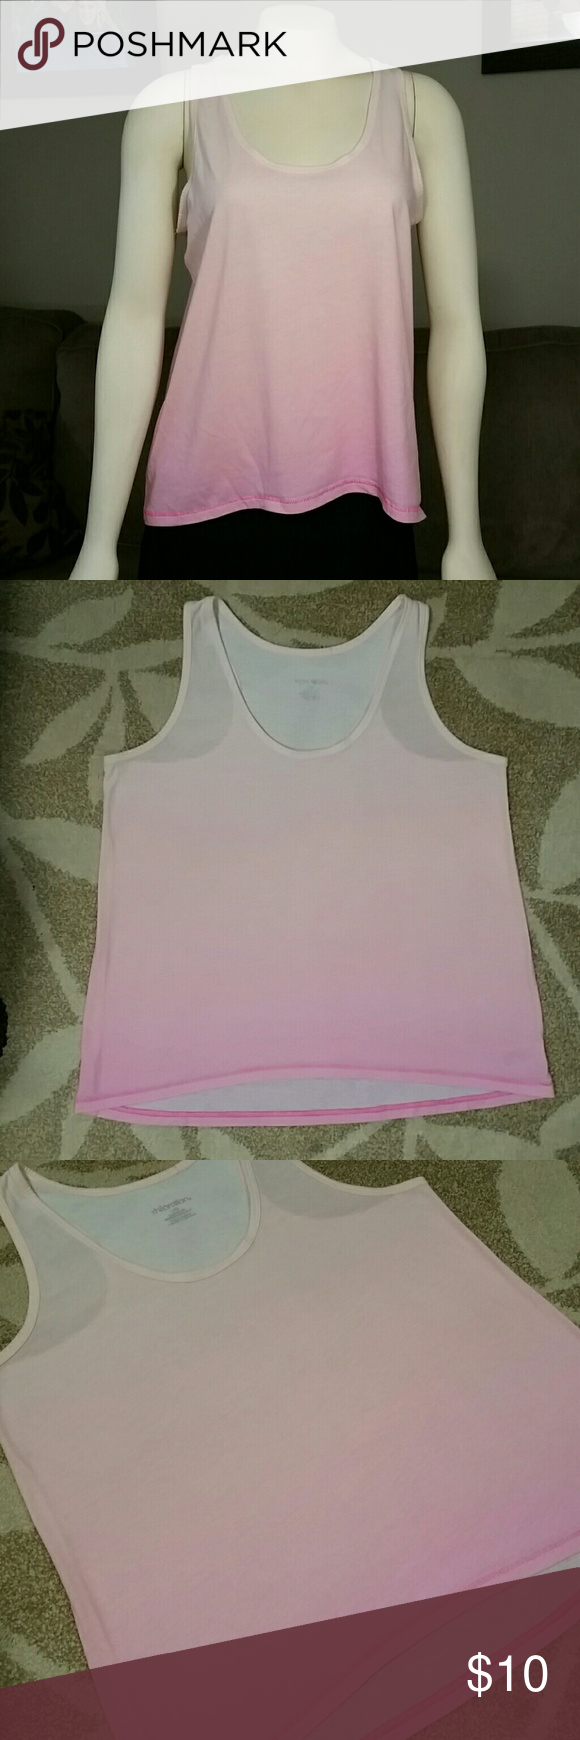 """Pink Ombre Tank Top by Xhilaration Super comfortable with colors of pink, Ombre Tank top! Light pink/peach at the top fading into hotter pink at the bottom. Inside tag says """"sleepwear"""" but honestly this is a cute out and about tank to layer over a sport bra or camisole~ Nice lose-fit. Gently worn, no damage or stains. Xhilaration Tops Tank Tops"""